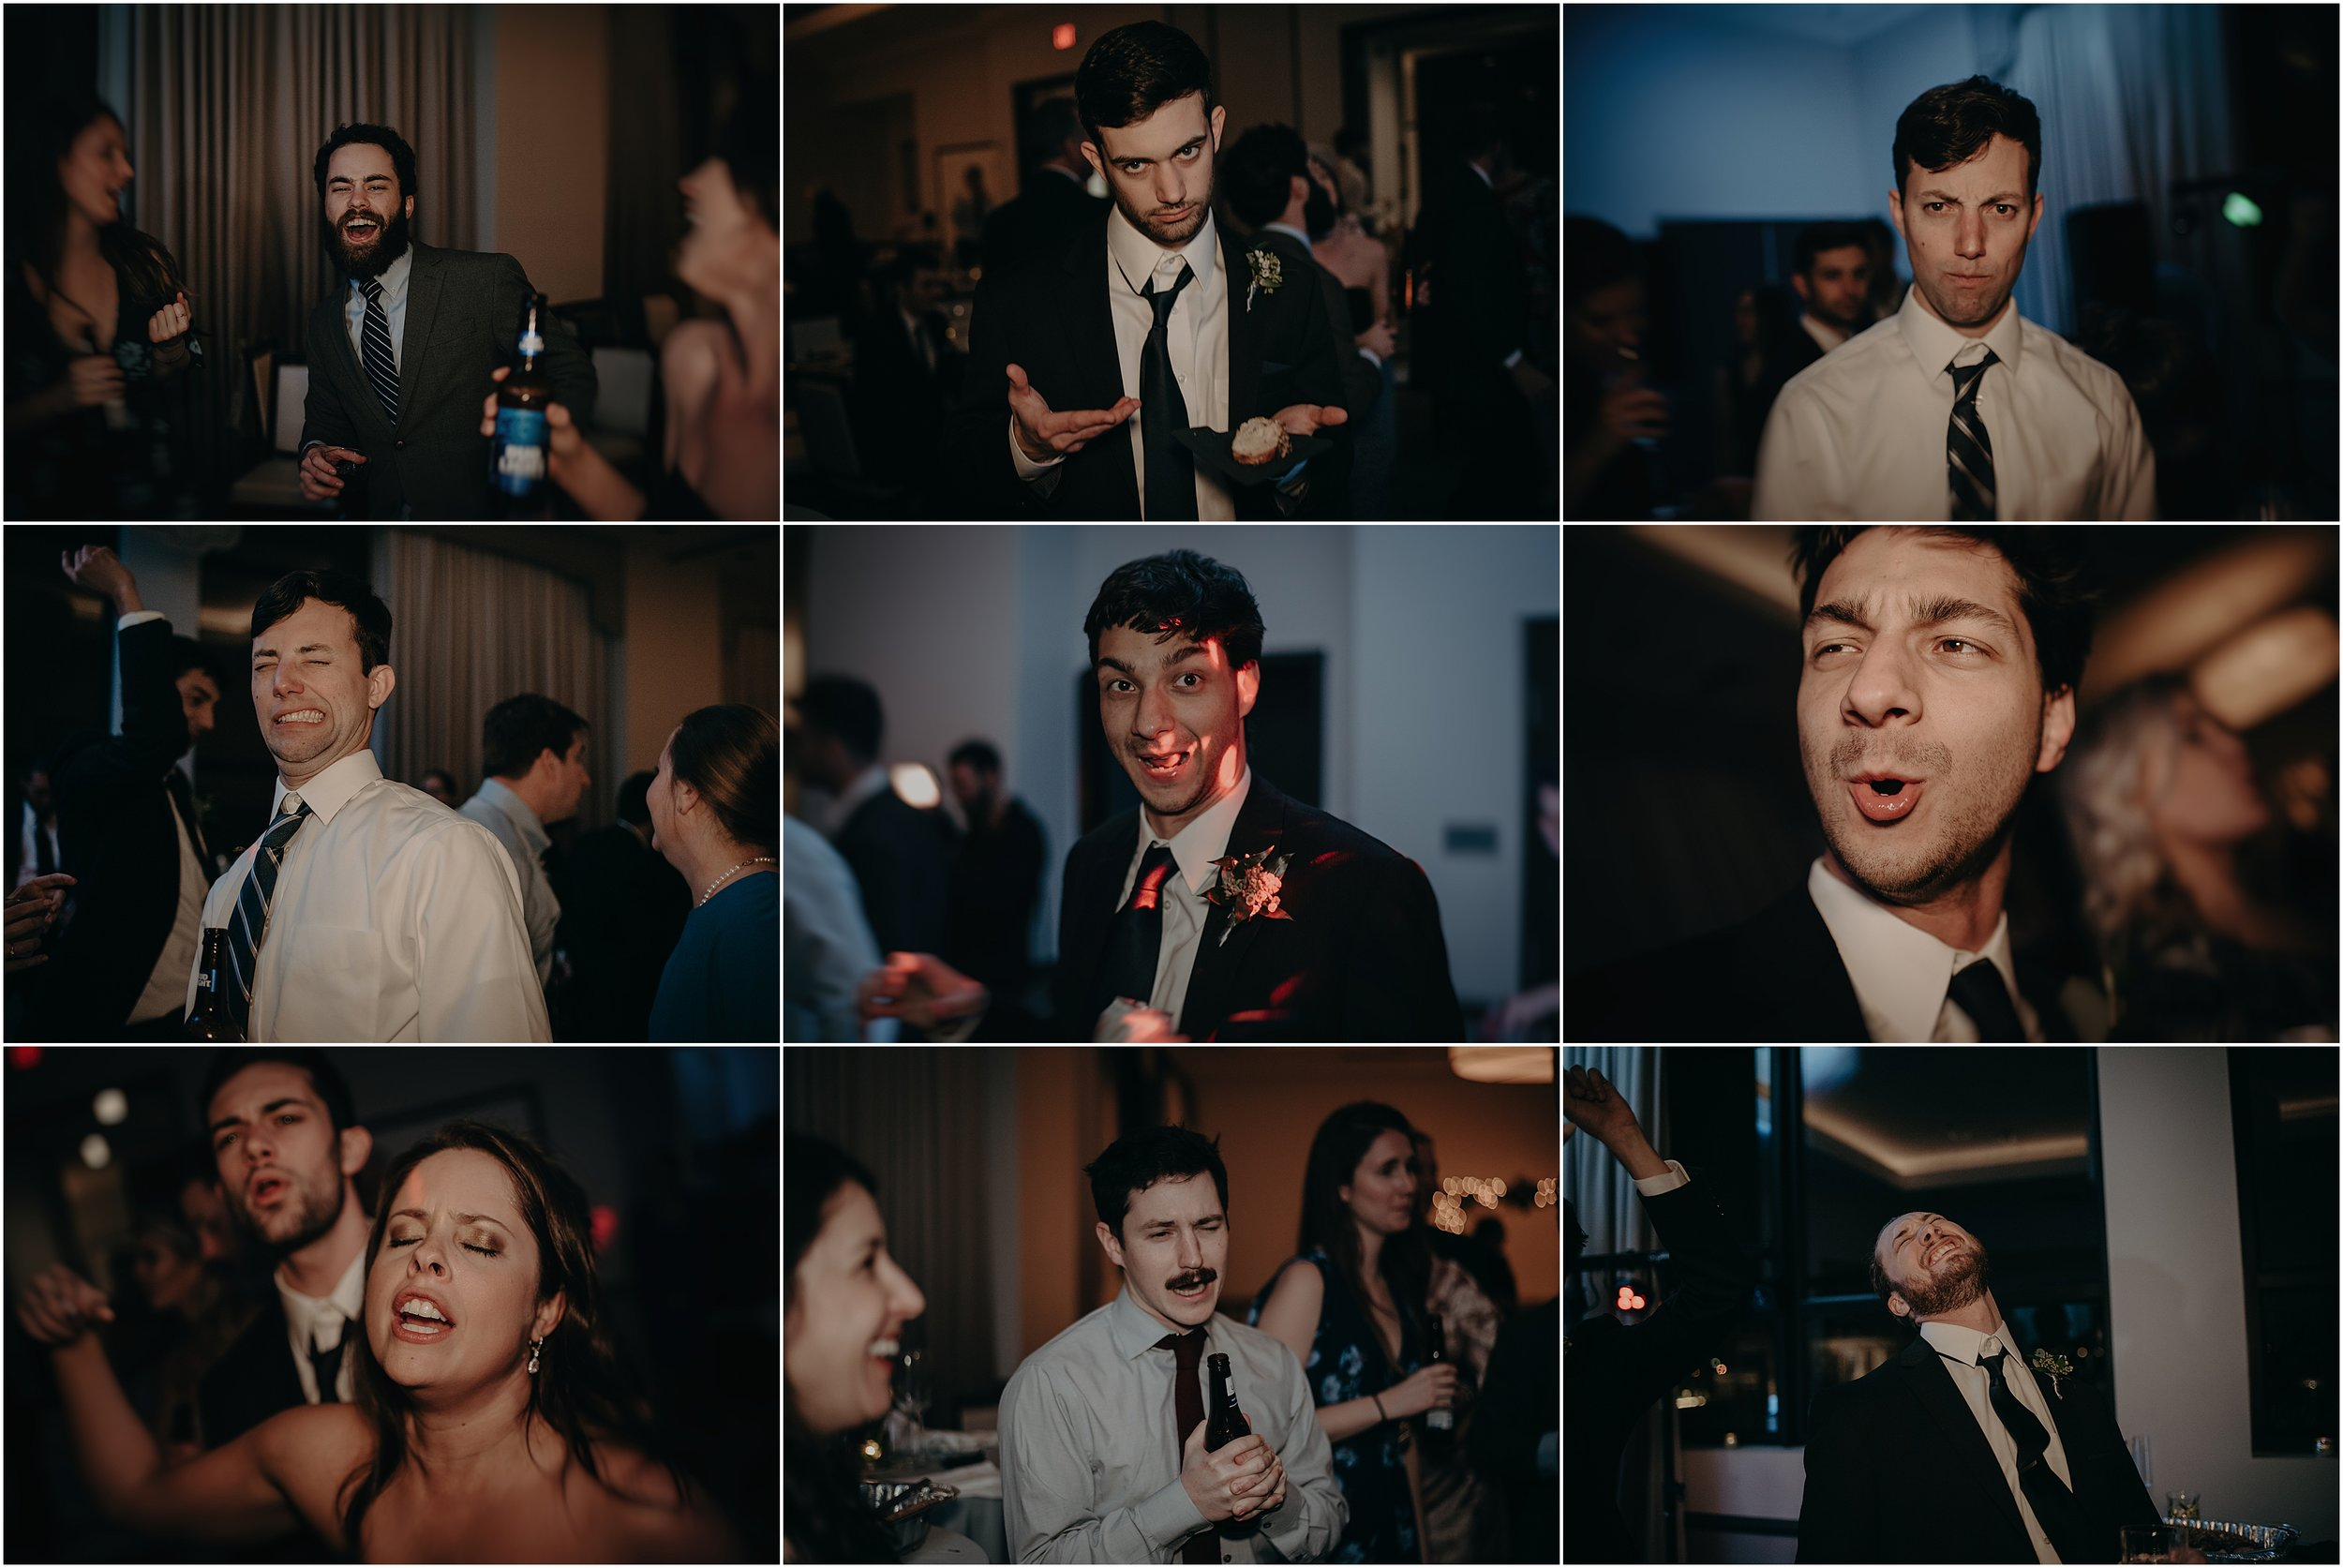 The faces of the reception